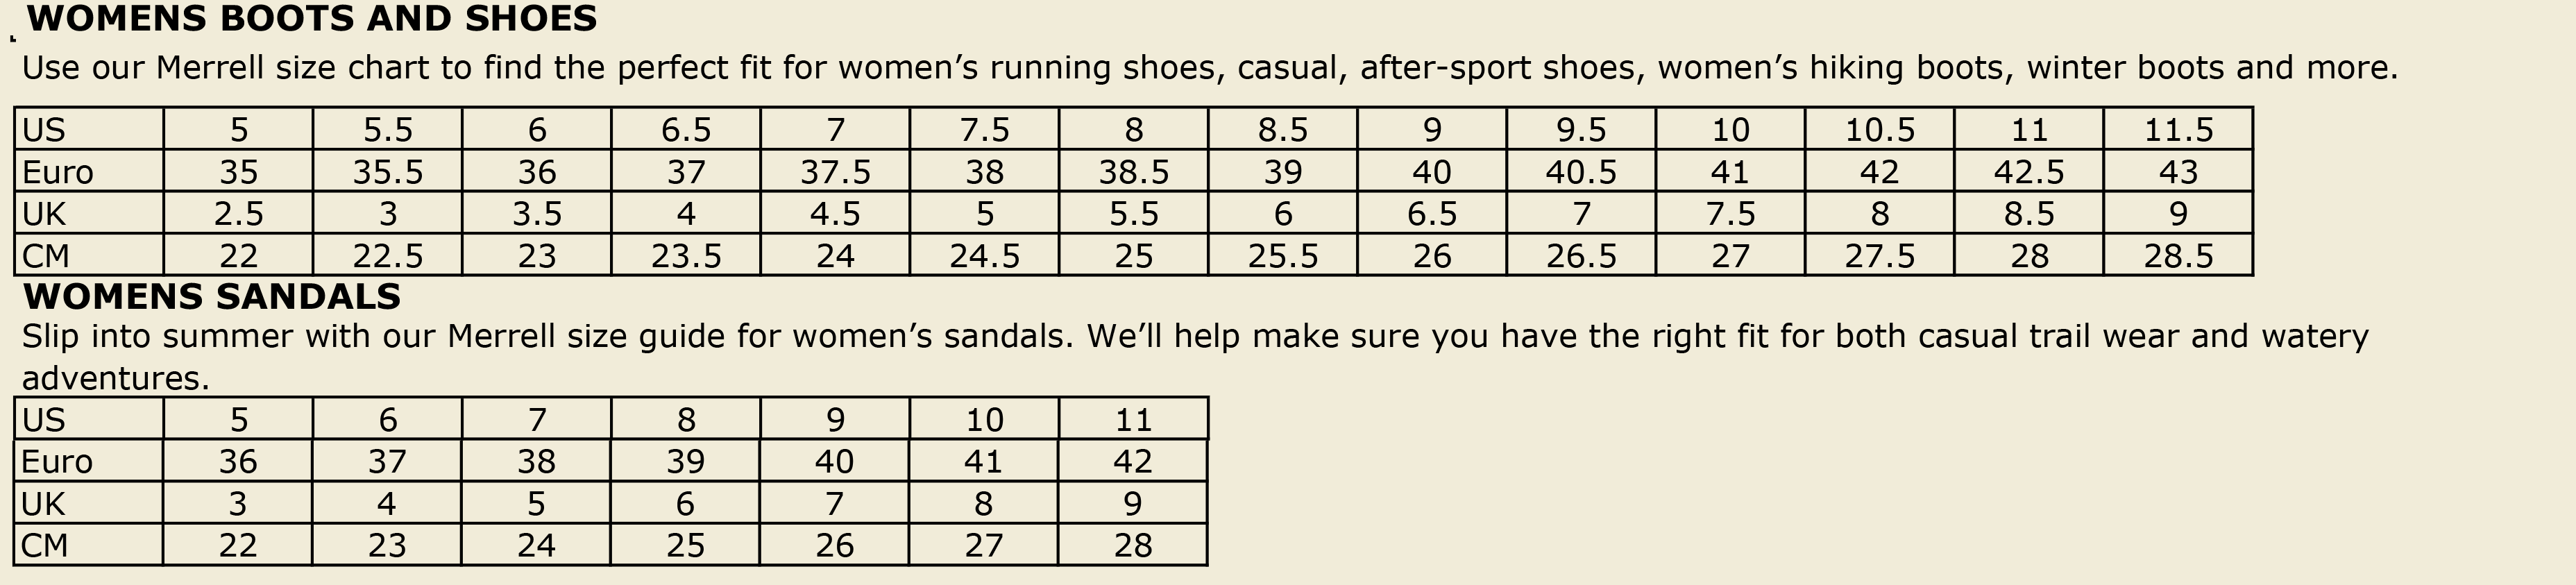 merrell size review chart